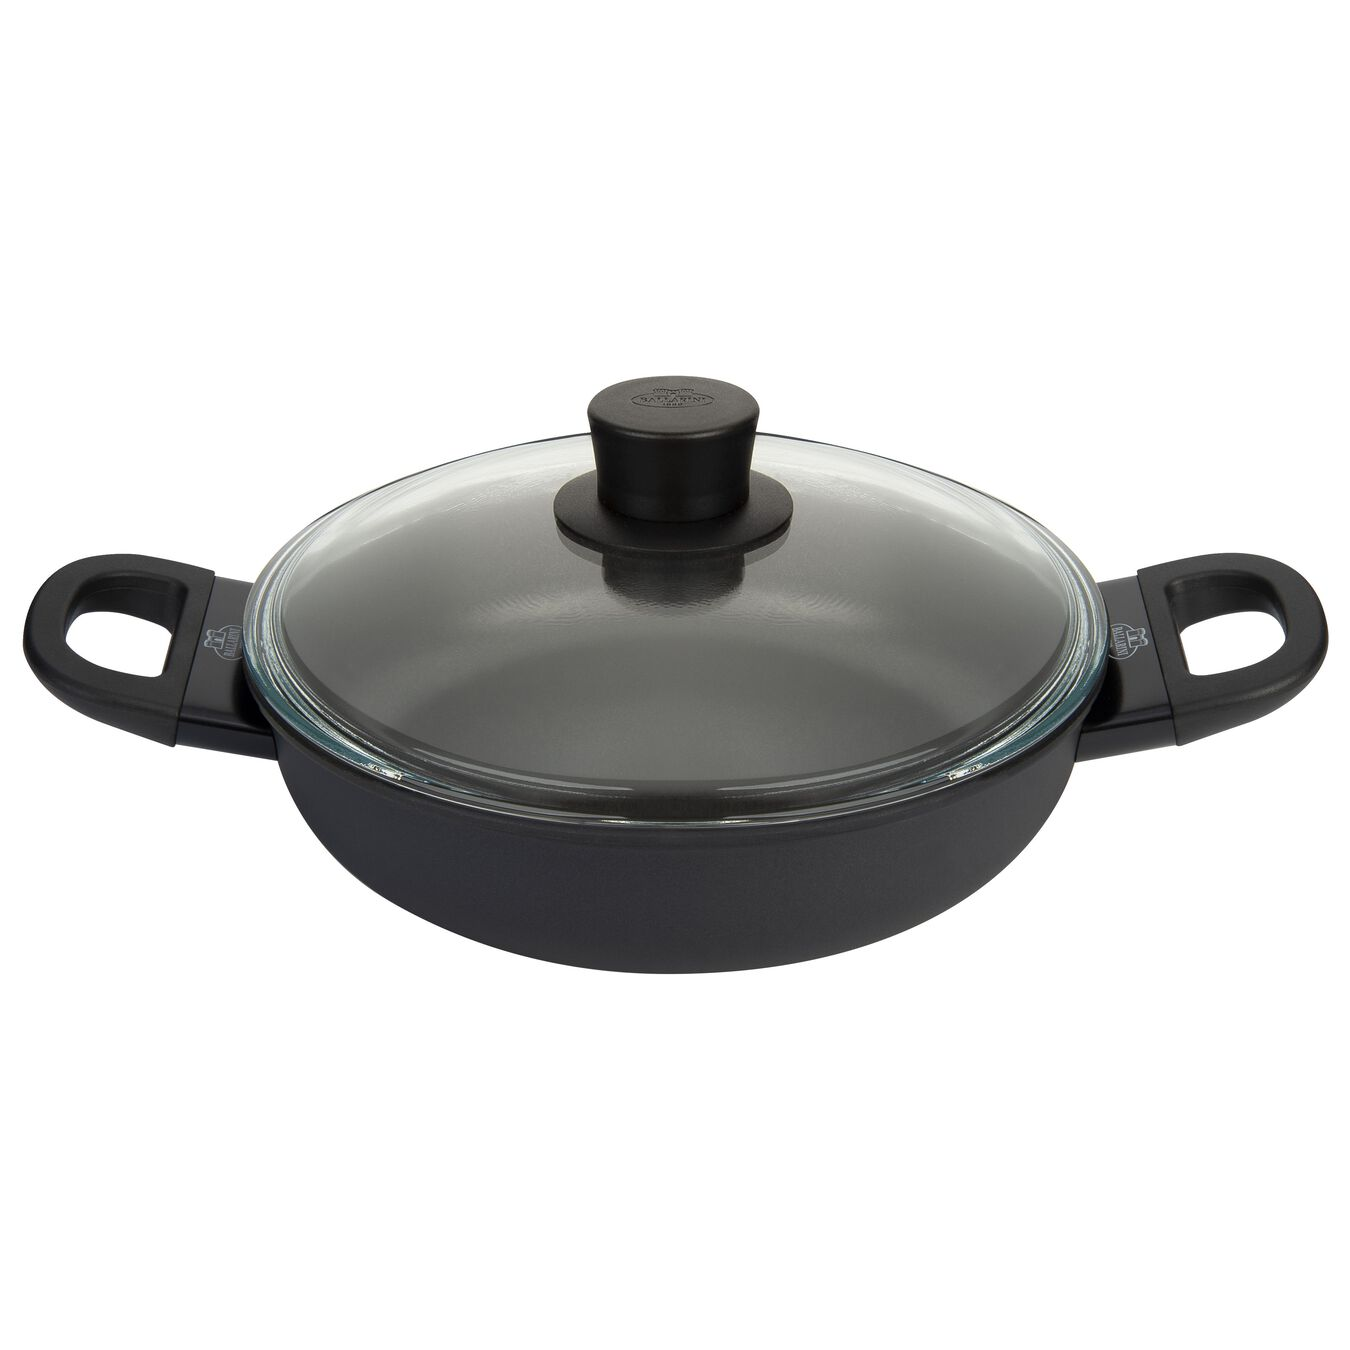 Aluminum round Saucier and sauteuse with glass lid, black,,large 1